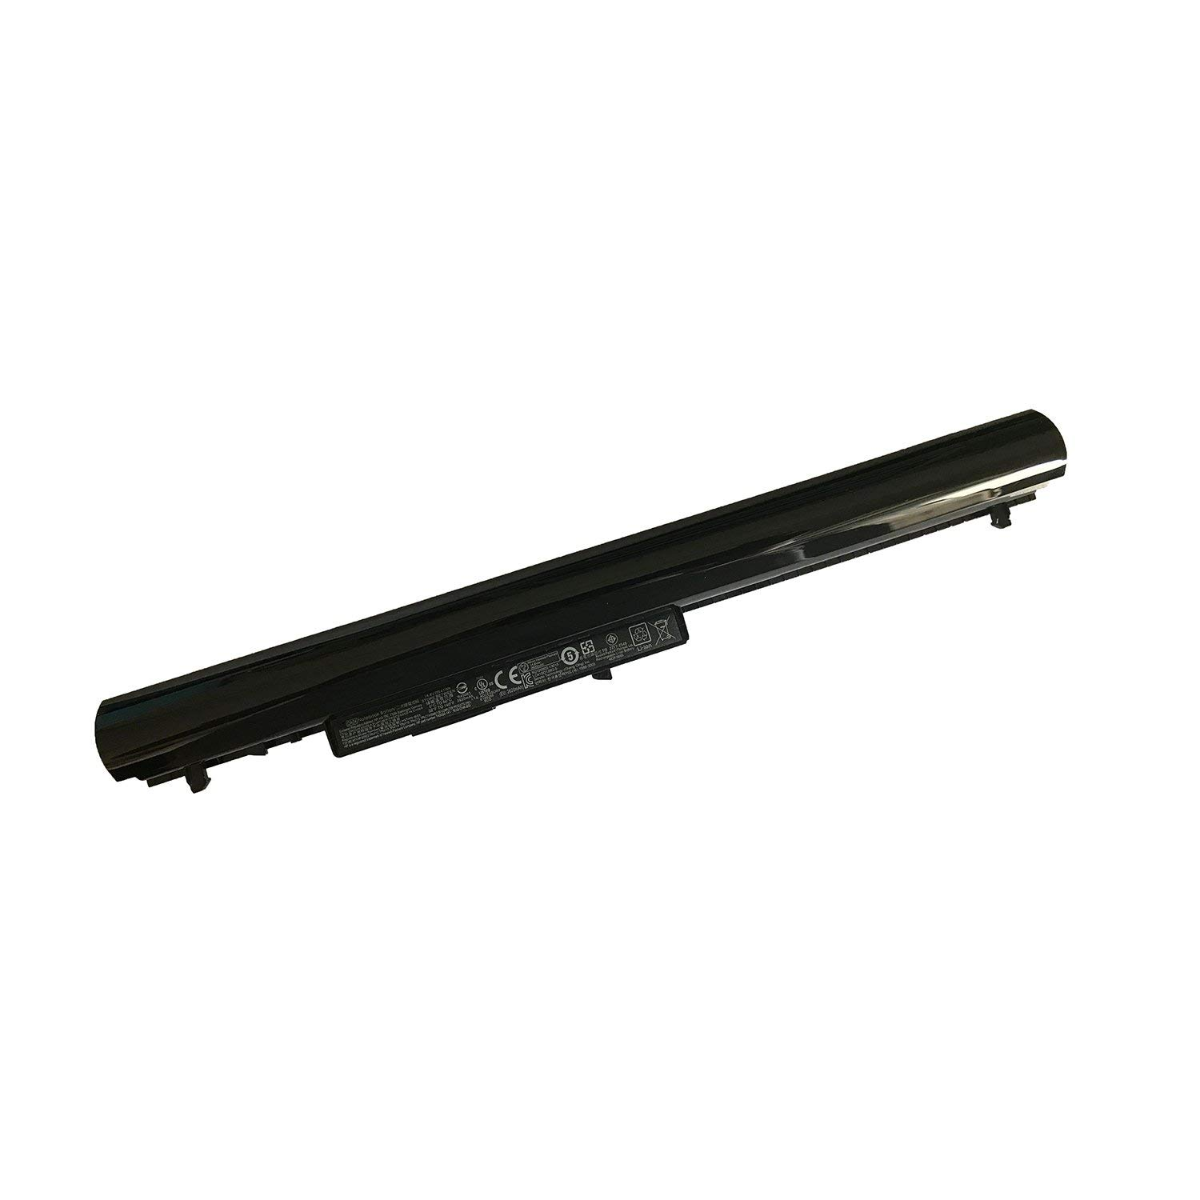 Μπαταρία Laptop - Battery for HP 15-R123TU 15-R124NS 15-R124NV 15-R124NX 15-R124TU 15-R125NA 15-R125NE 15-R125NF 15-R125NS OEM Υψηλής ποιότητας (Κωδ.1-BAT0002)